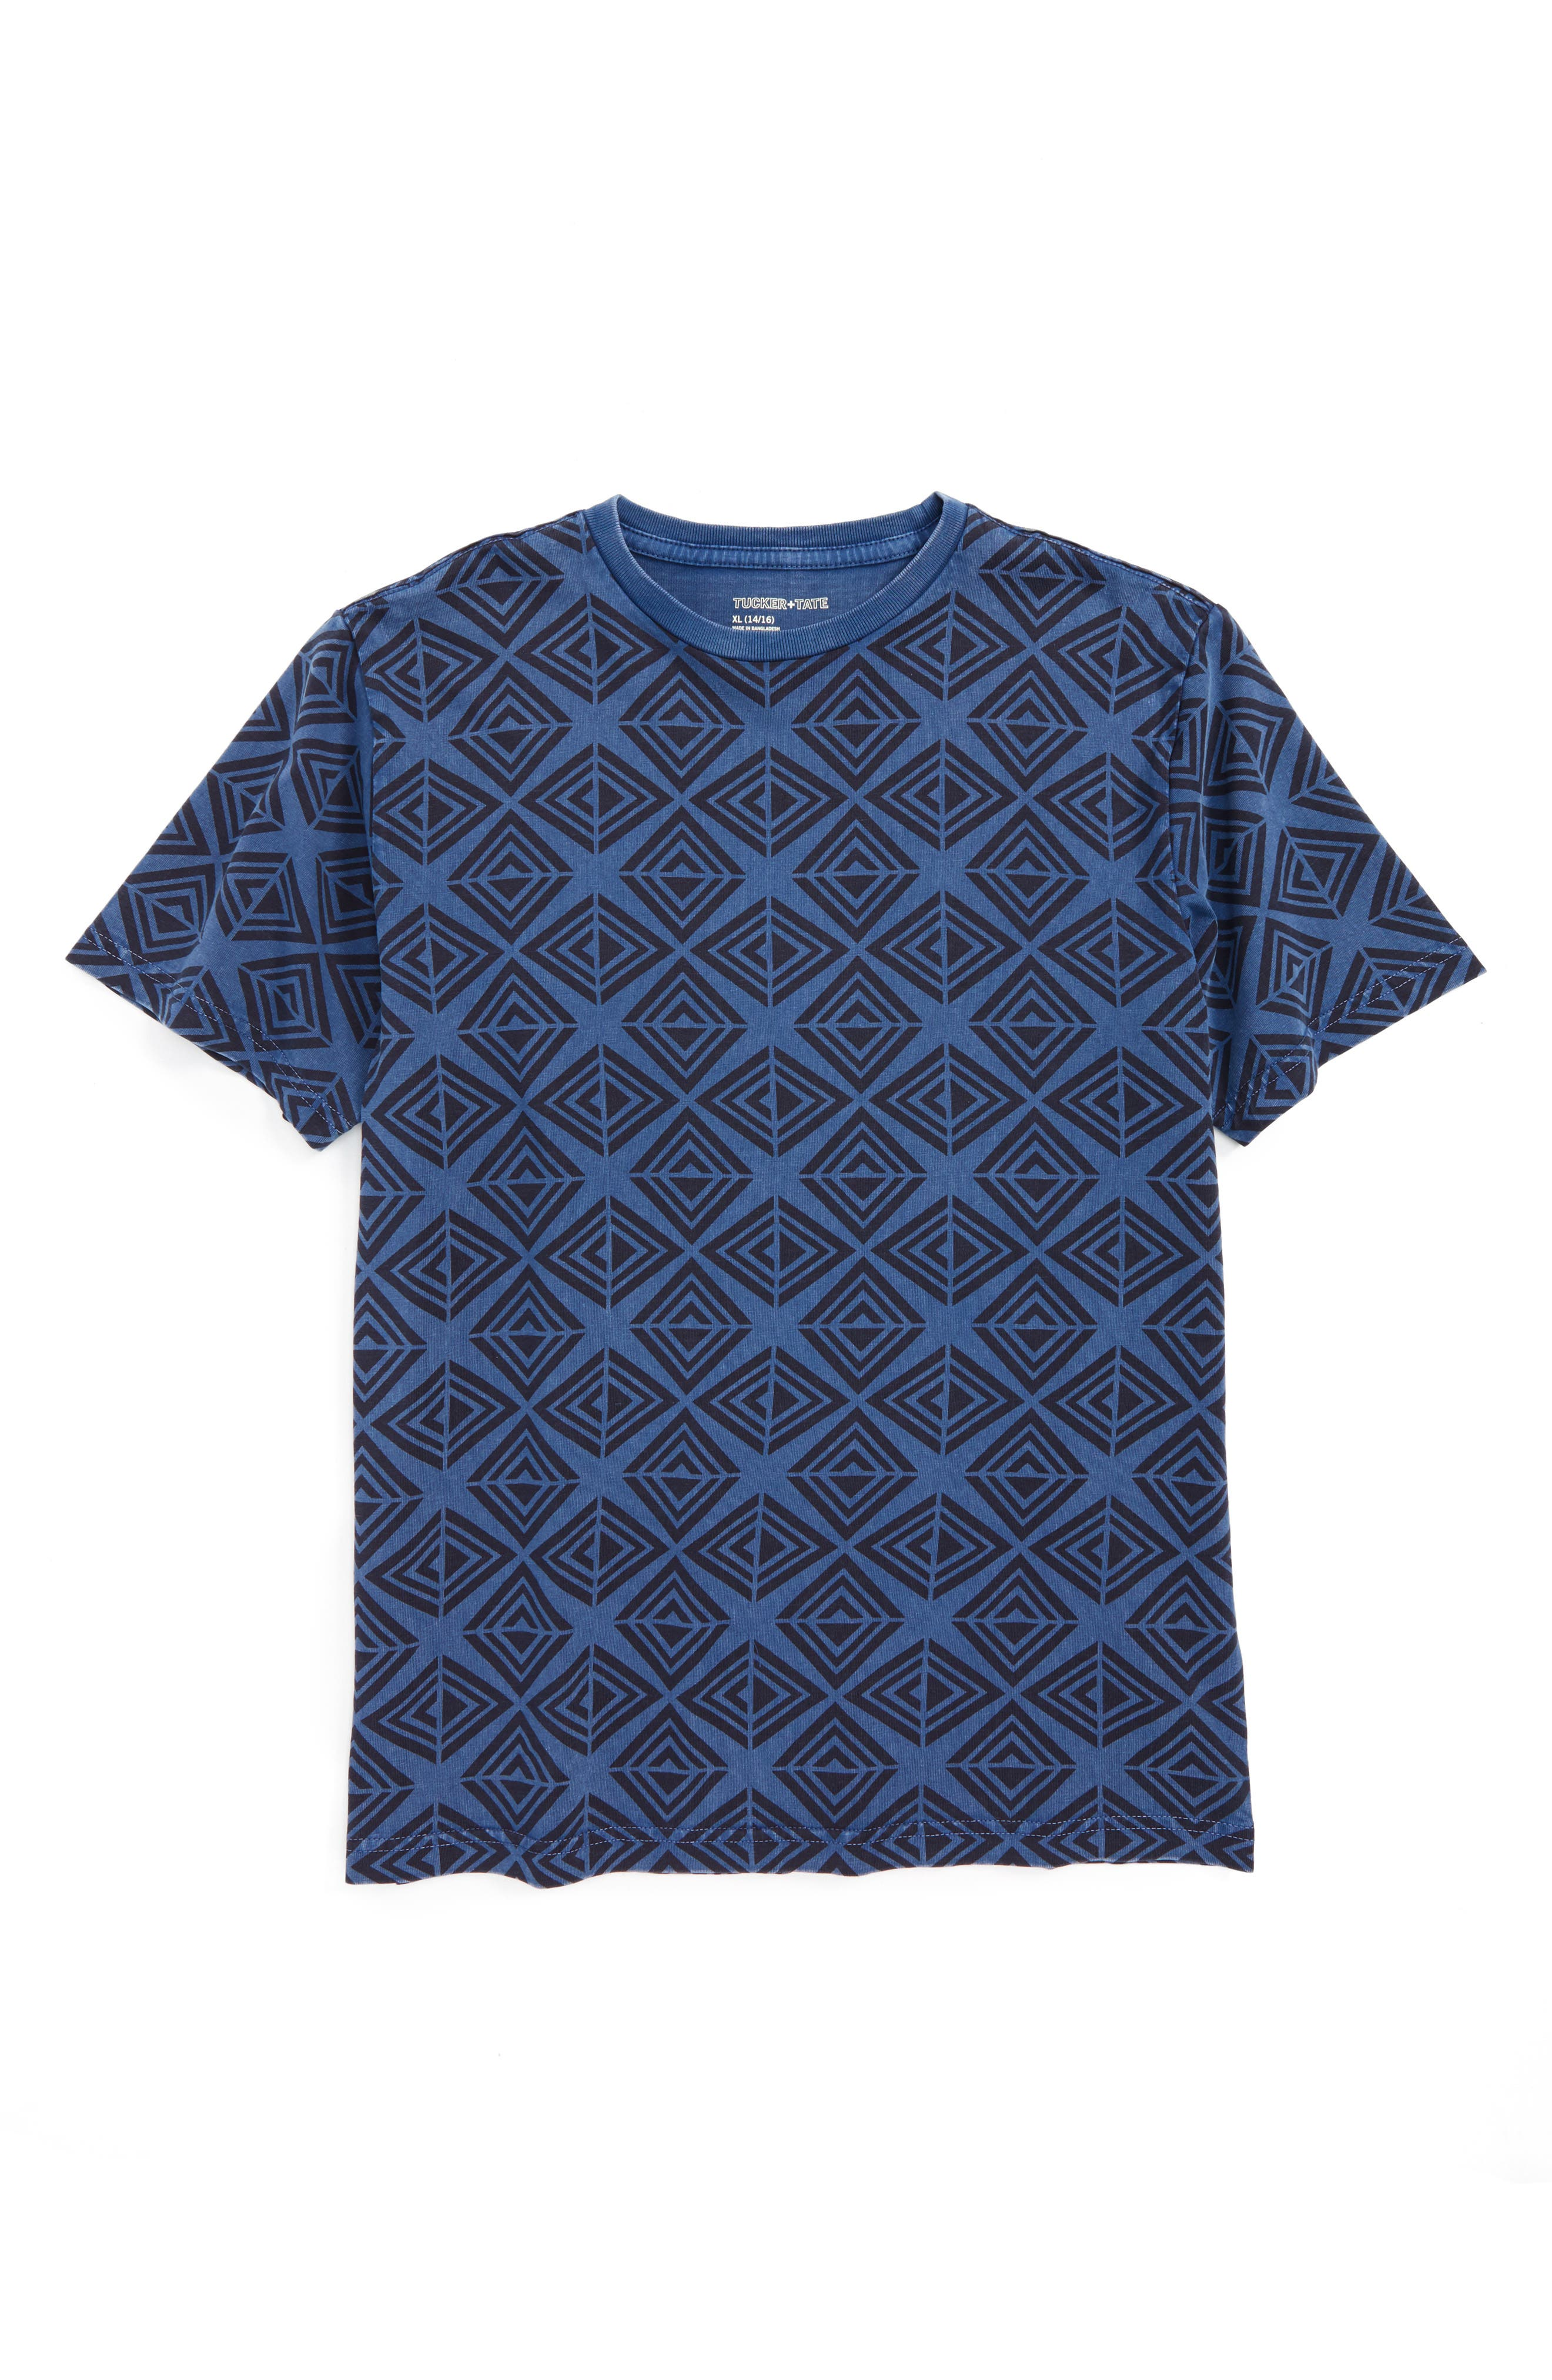 Tucker + Tate Geometric T-Shirt (Big Boys)